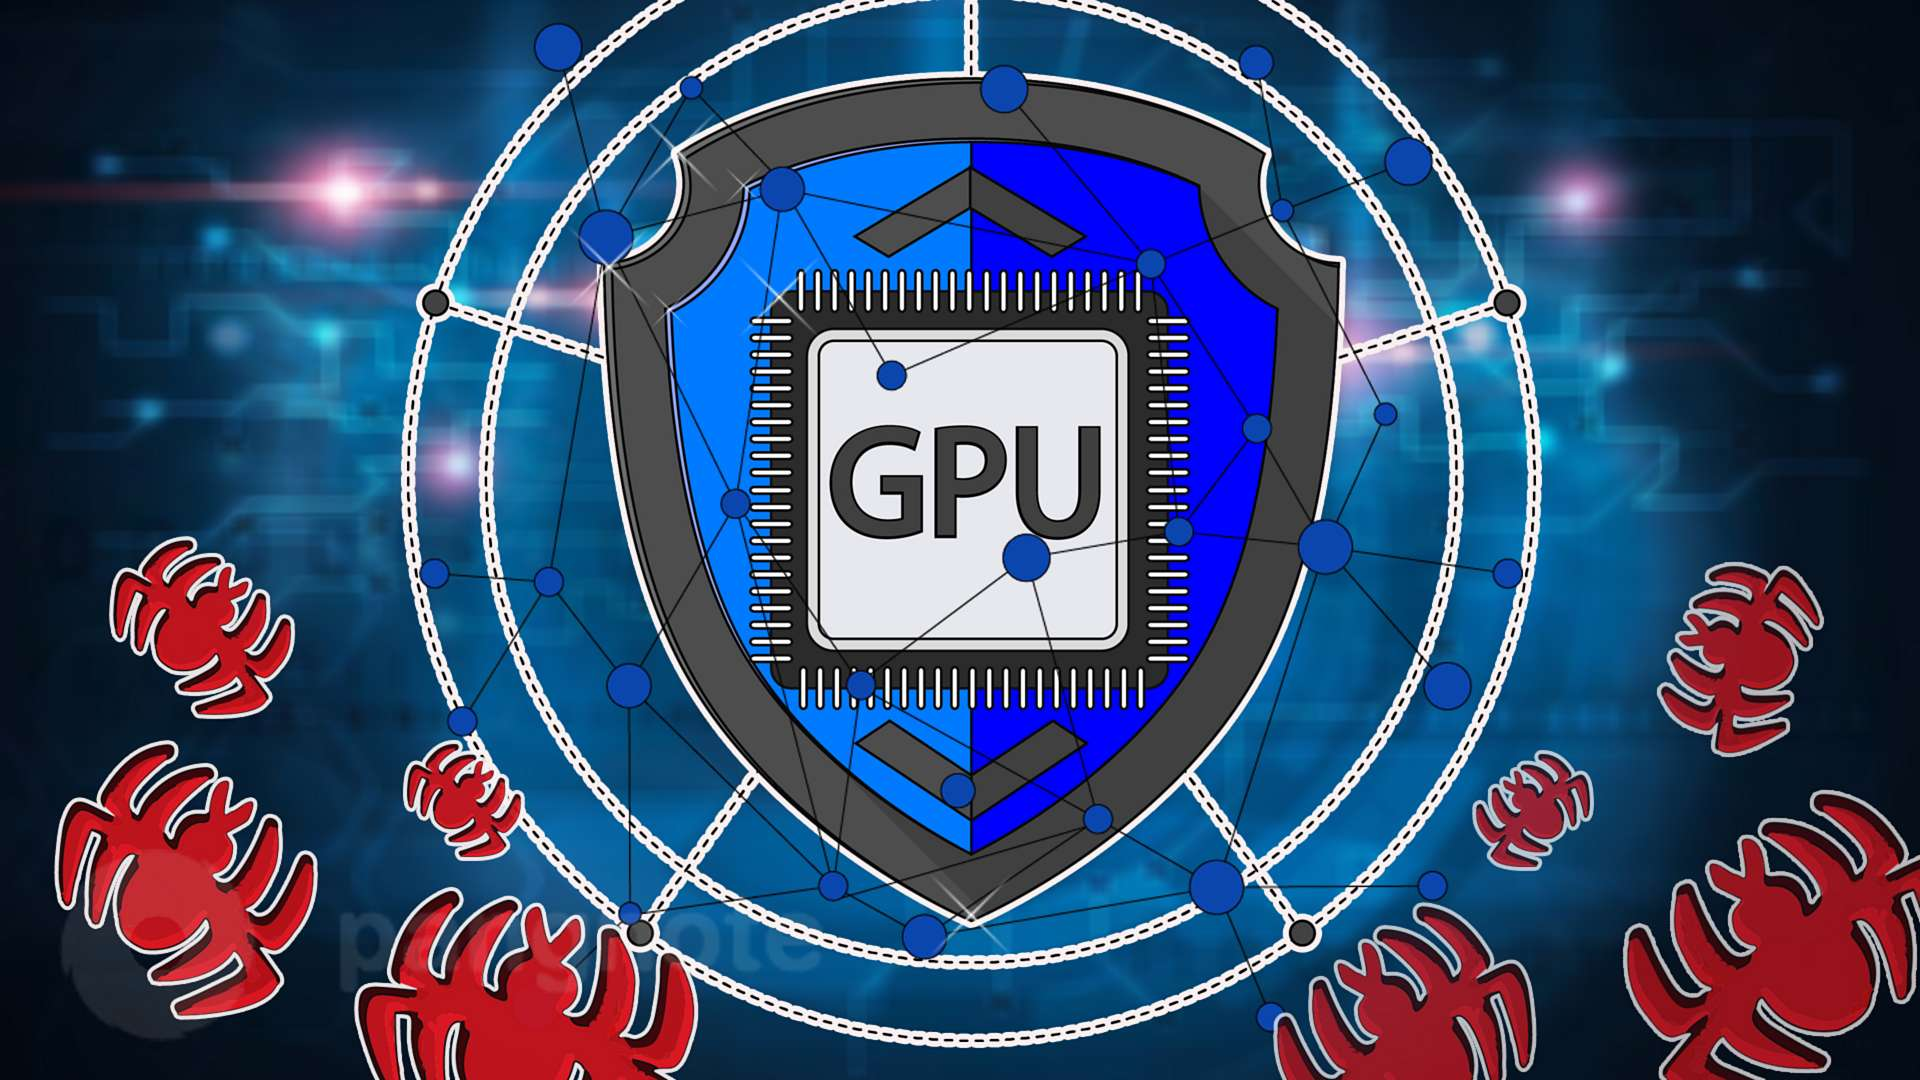 Using graphics processors to protect against virus attacks